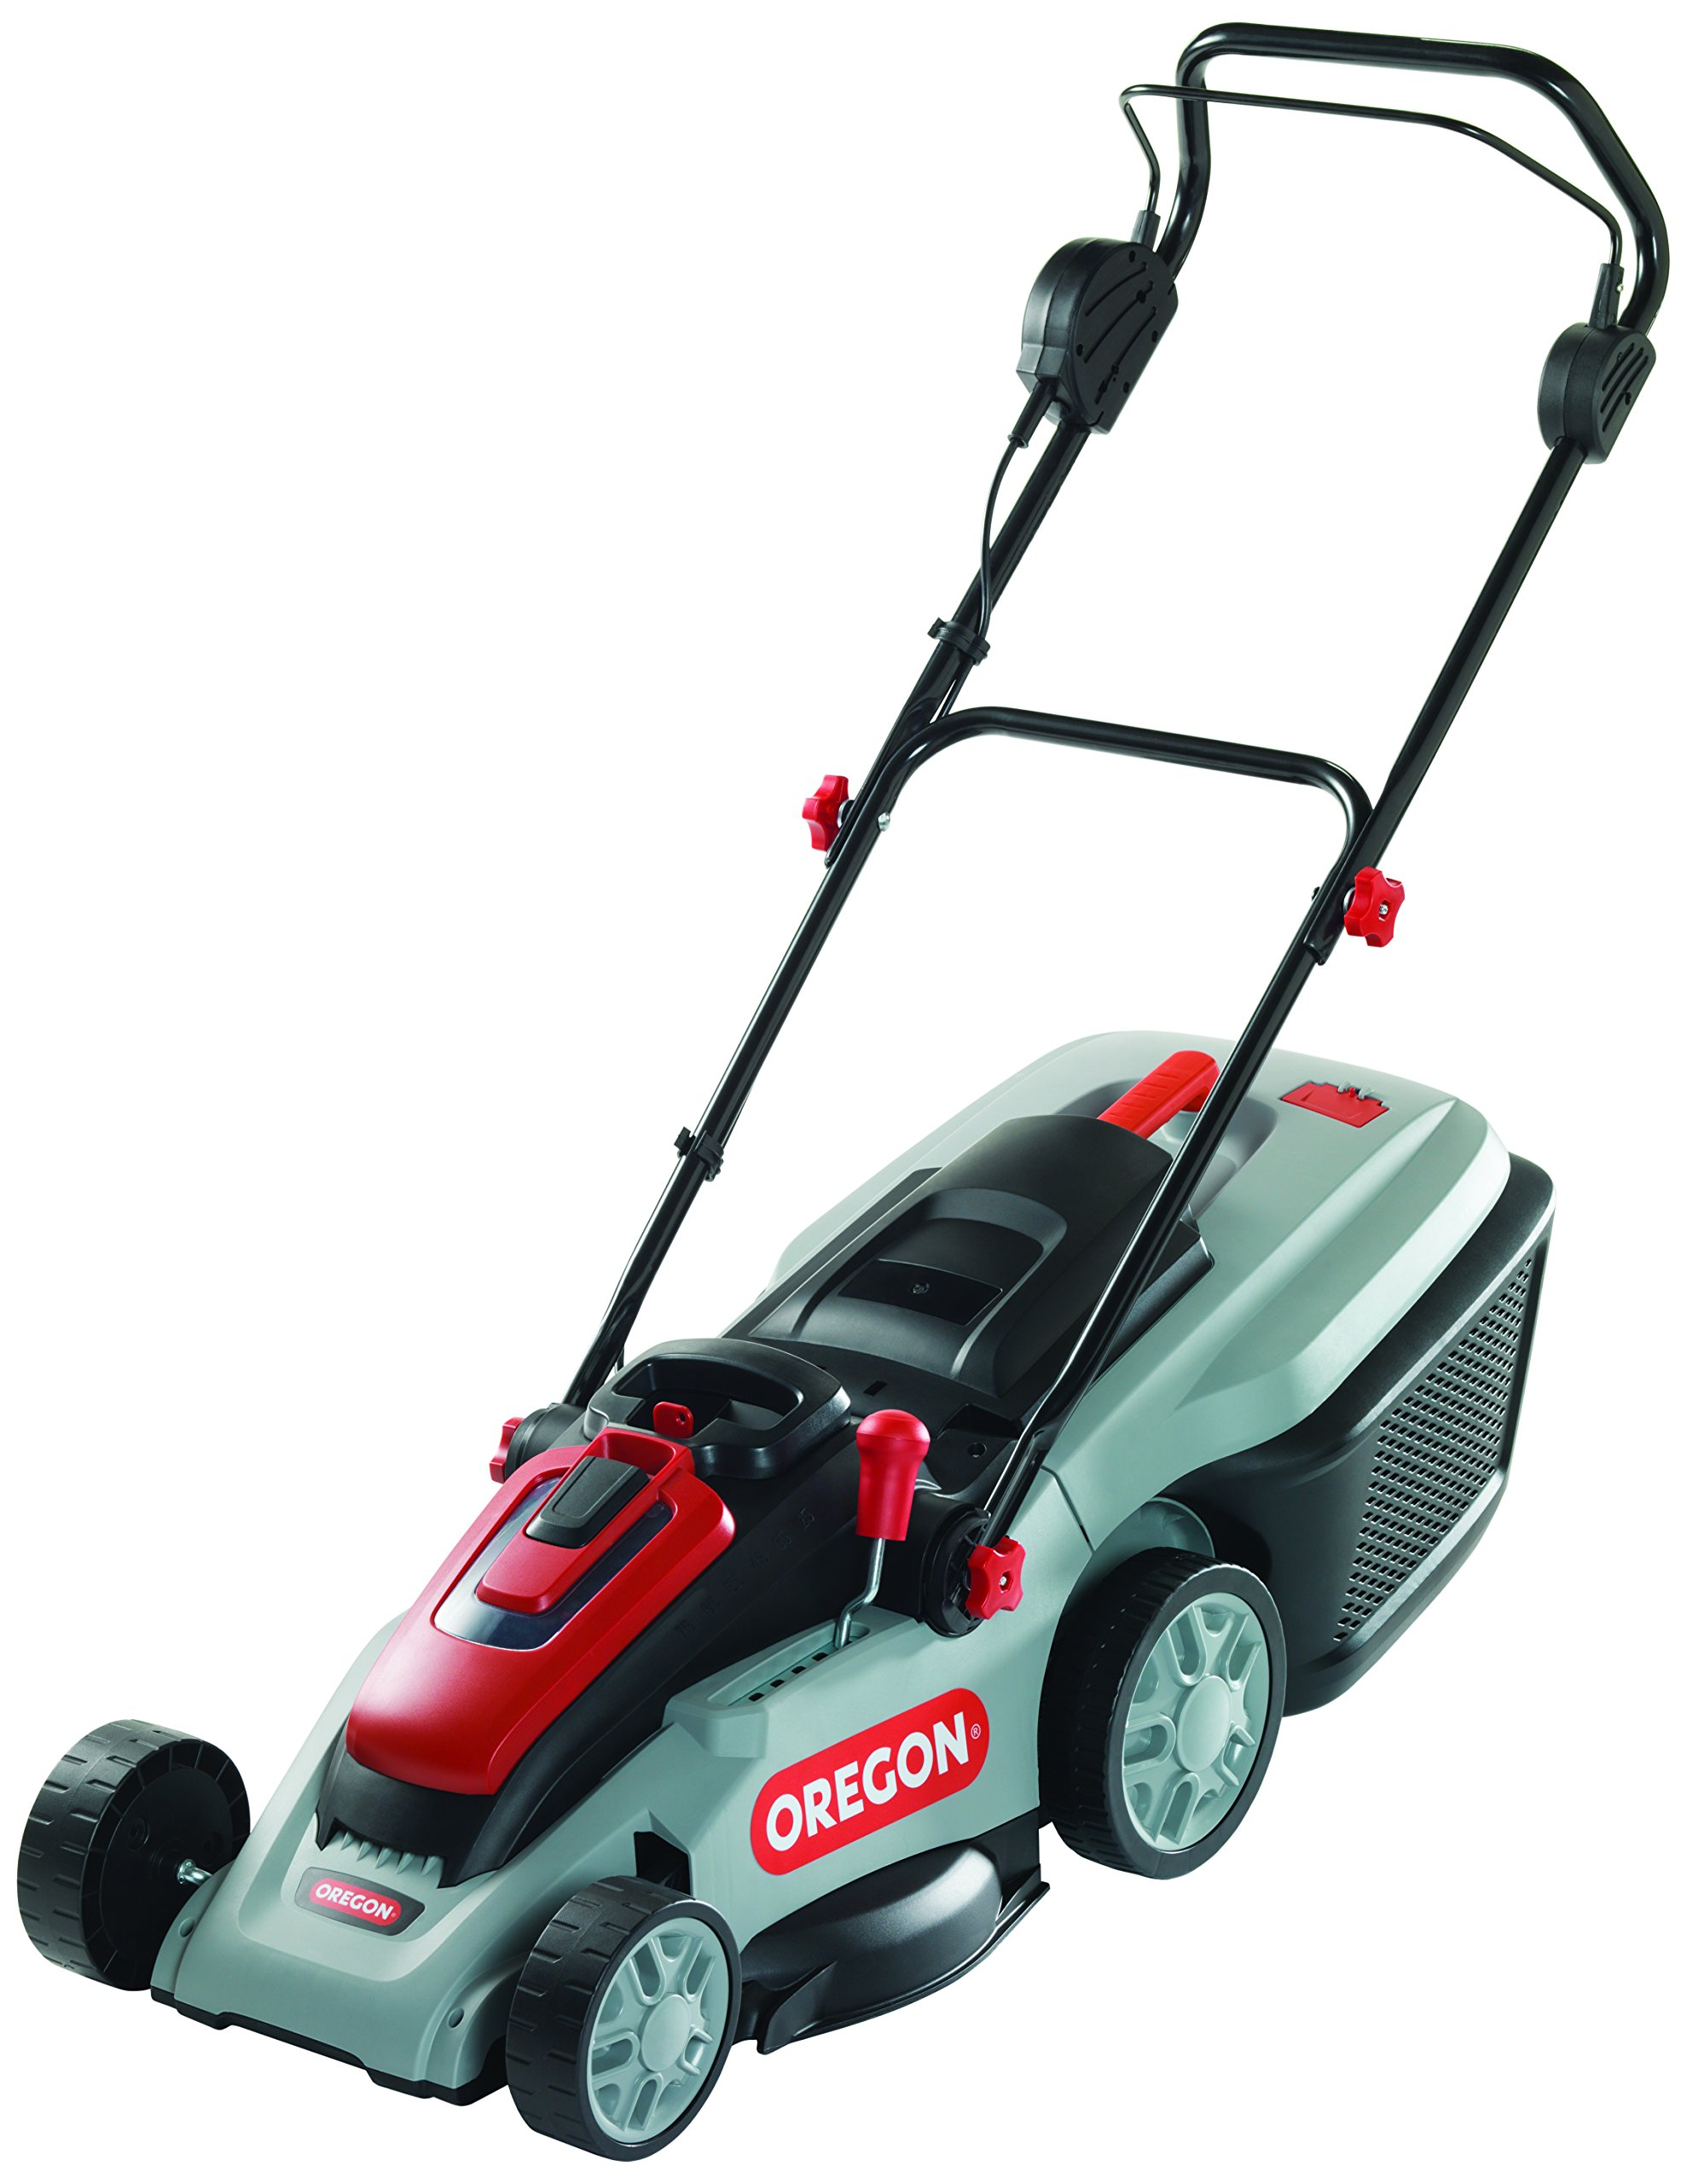 Oregon Cordless 40V Lawn Mower Kit LM300 - Tool Only